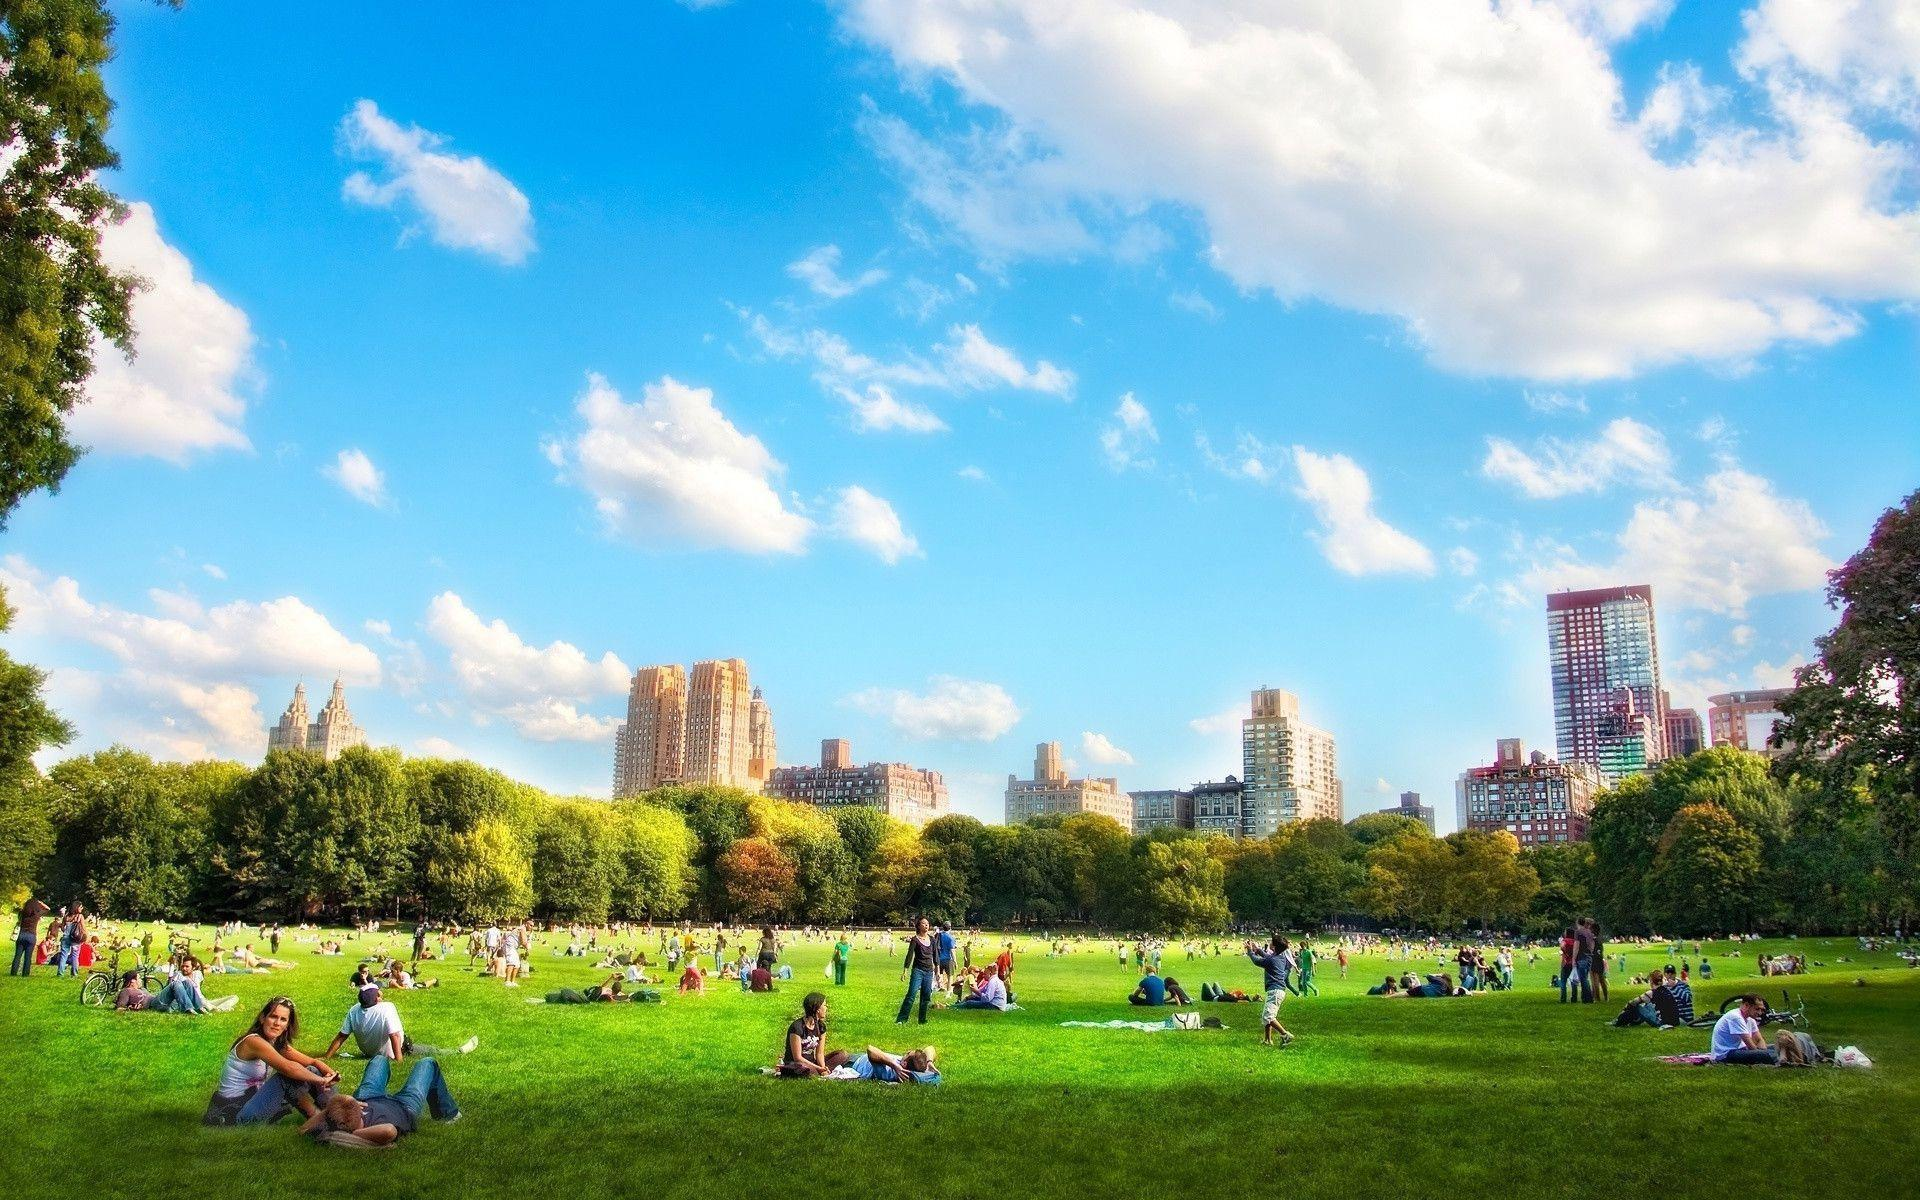 Central Park New York City Wallpapers and Photo Download by